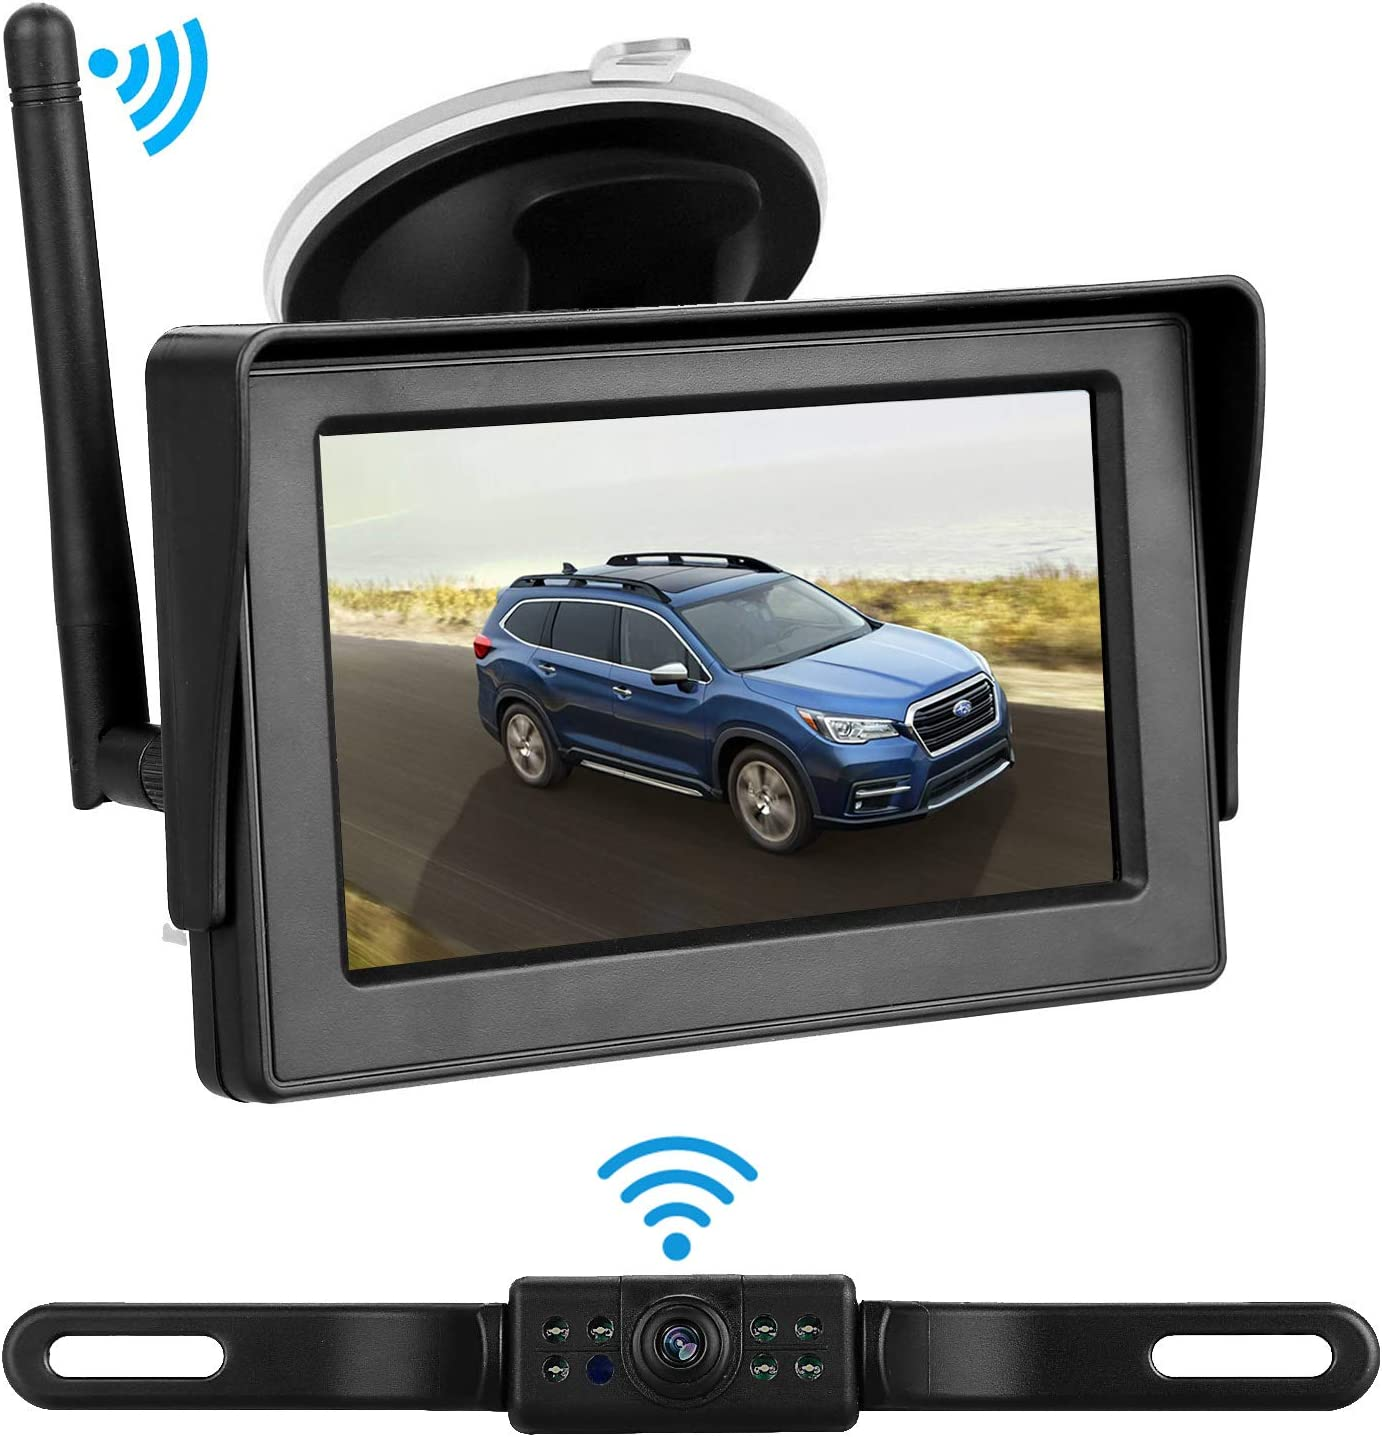 iStrong HD Backup Camera and Monitor Kit for Cars/SUVs/Minivans with 4.3'' Monitor 9V-24V System 7 White Light LED Night Vision Waterproof License Plate Camera